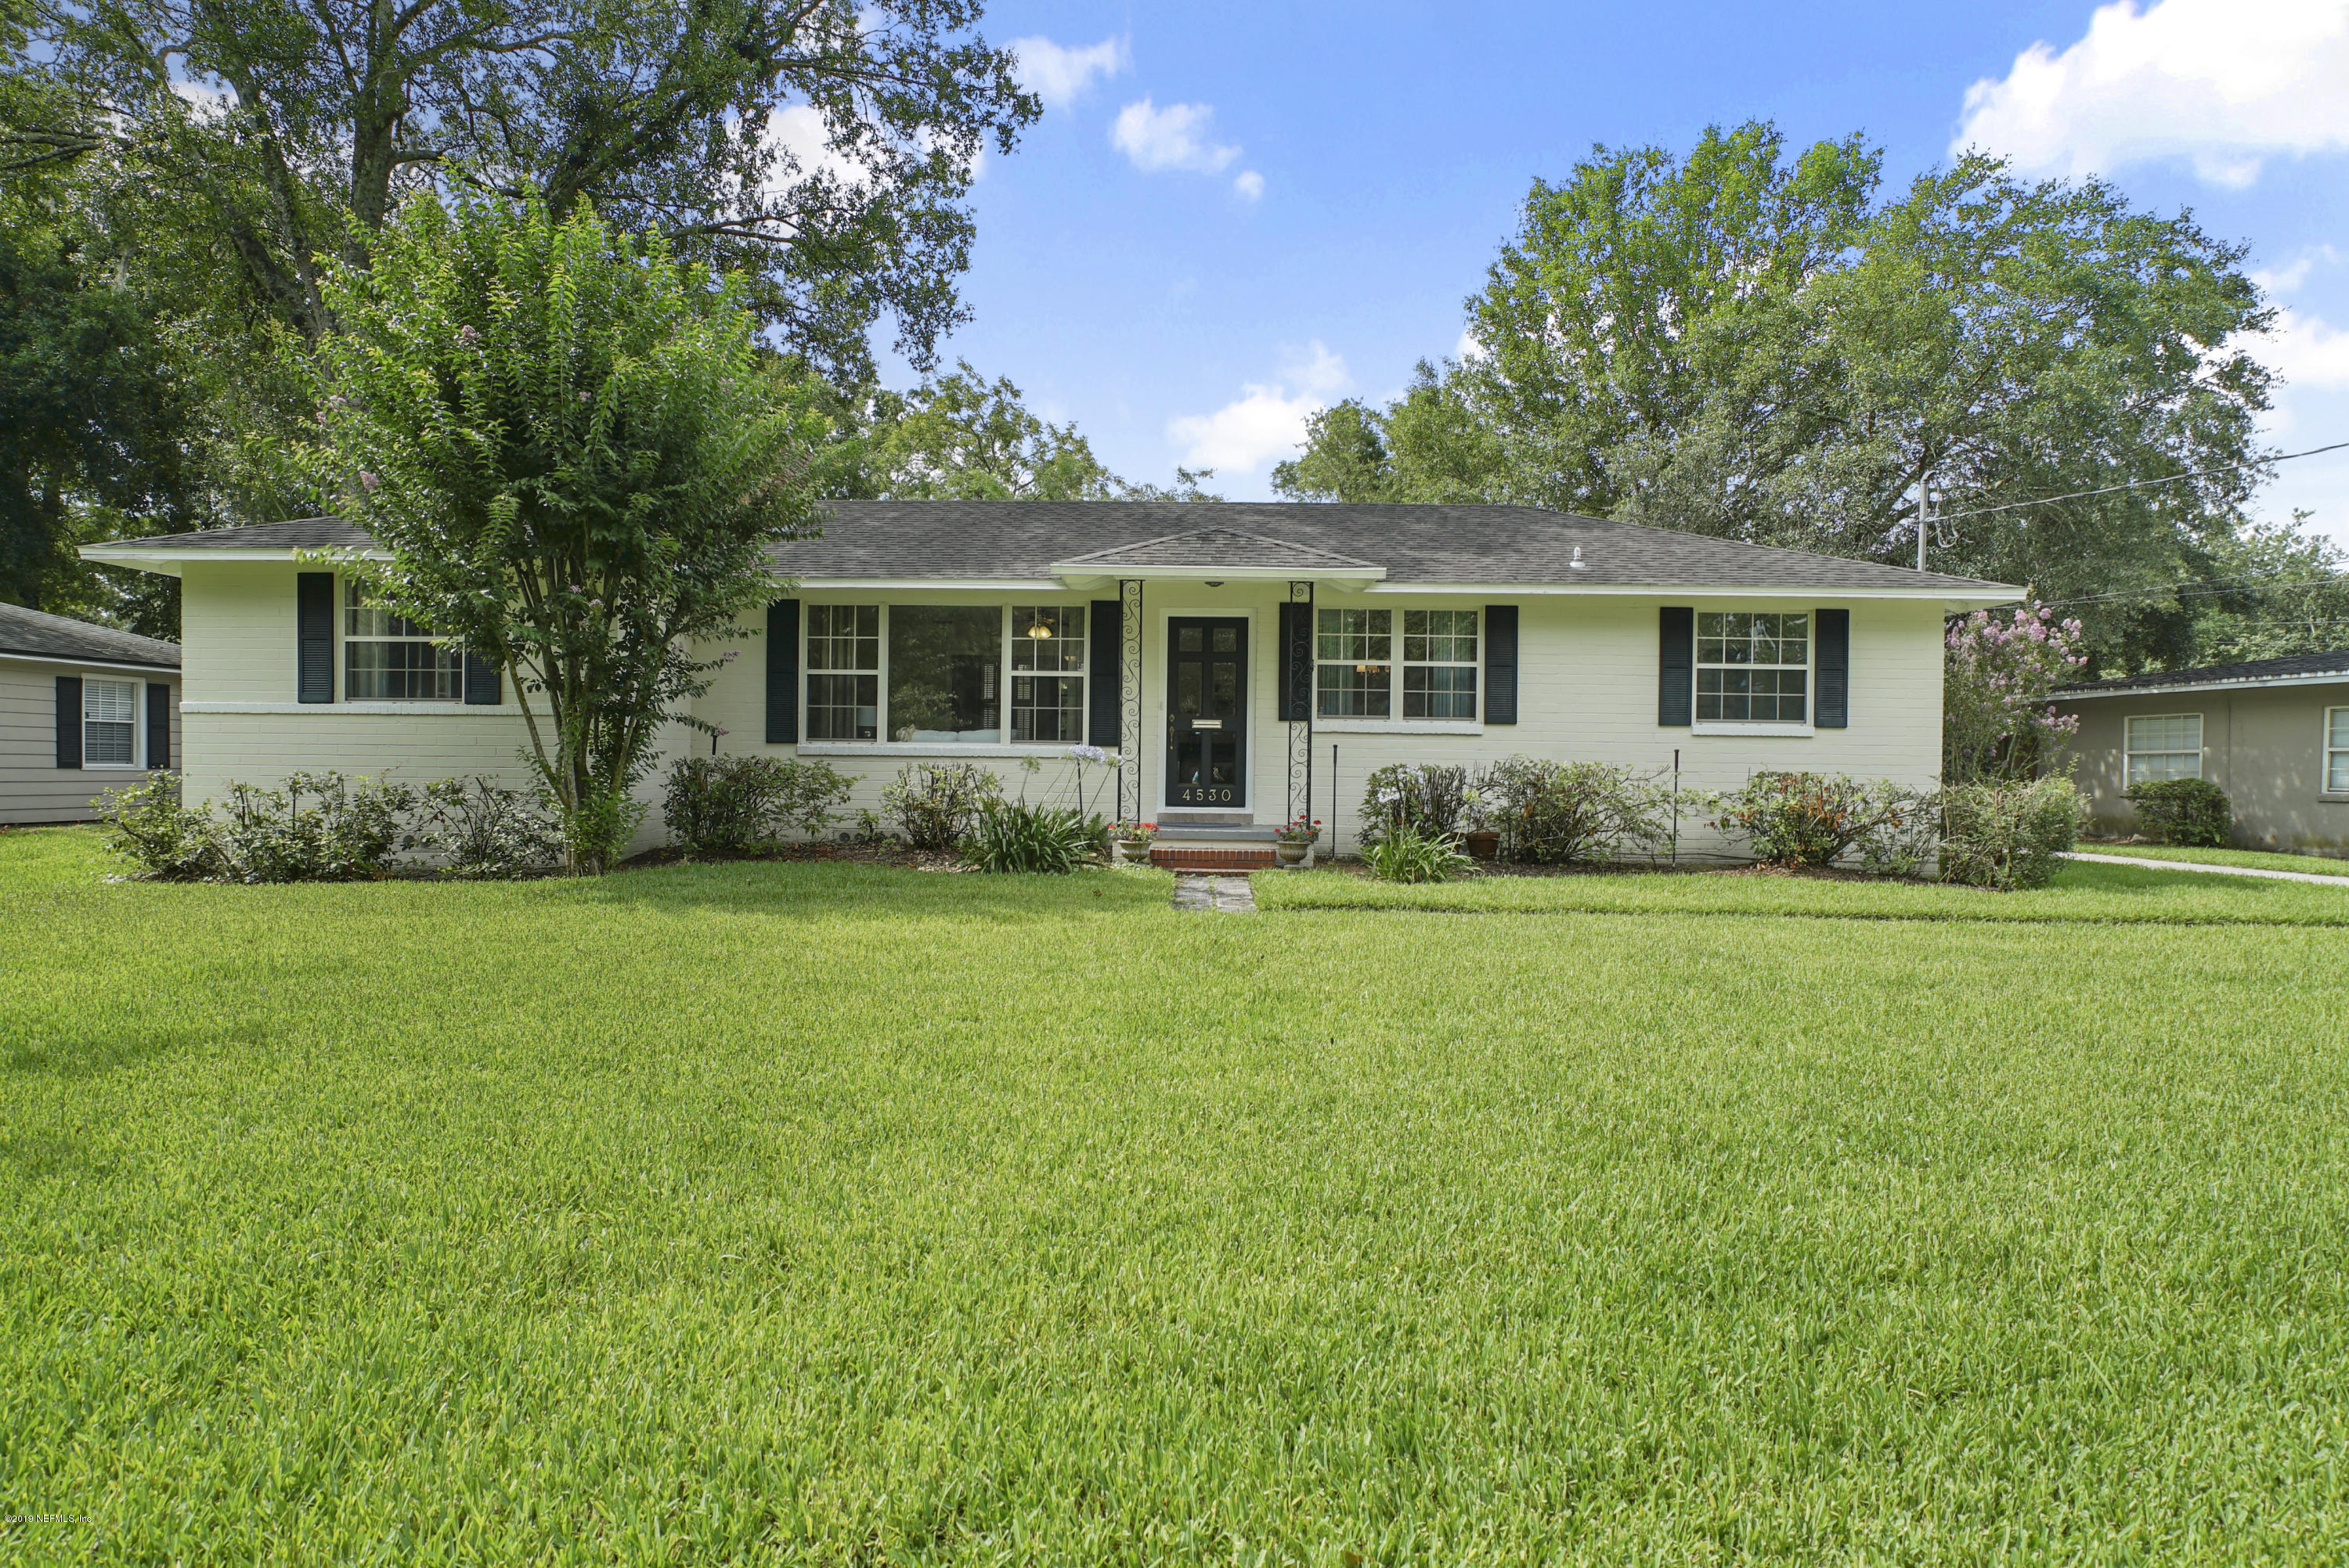 4530 HUNTINGTON, JACKSONVILLE, FLORIDA 32210, 3 Bedrooms Bedrooms, ,3 BathroomsBathrooms,Residential - single family,For sale,HUNTINGTON,1000847